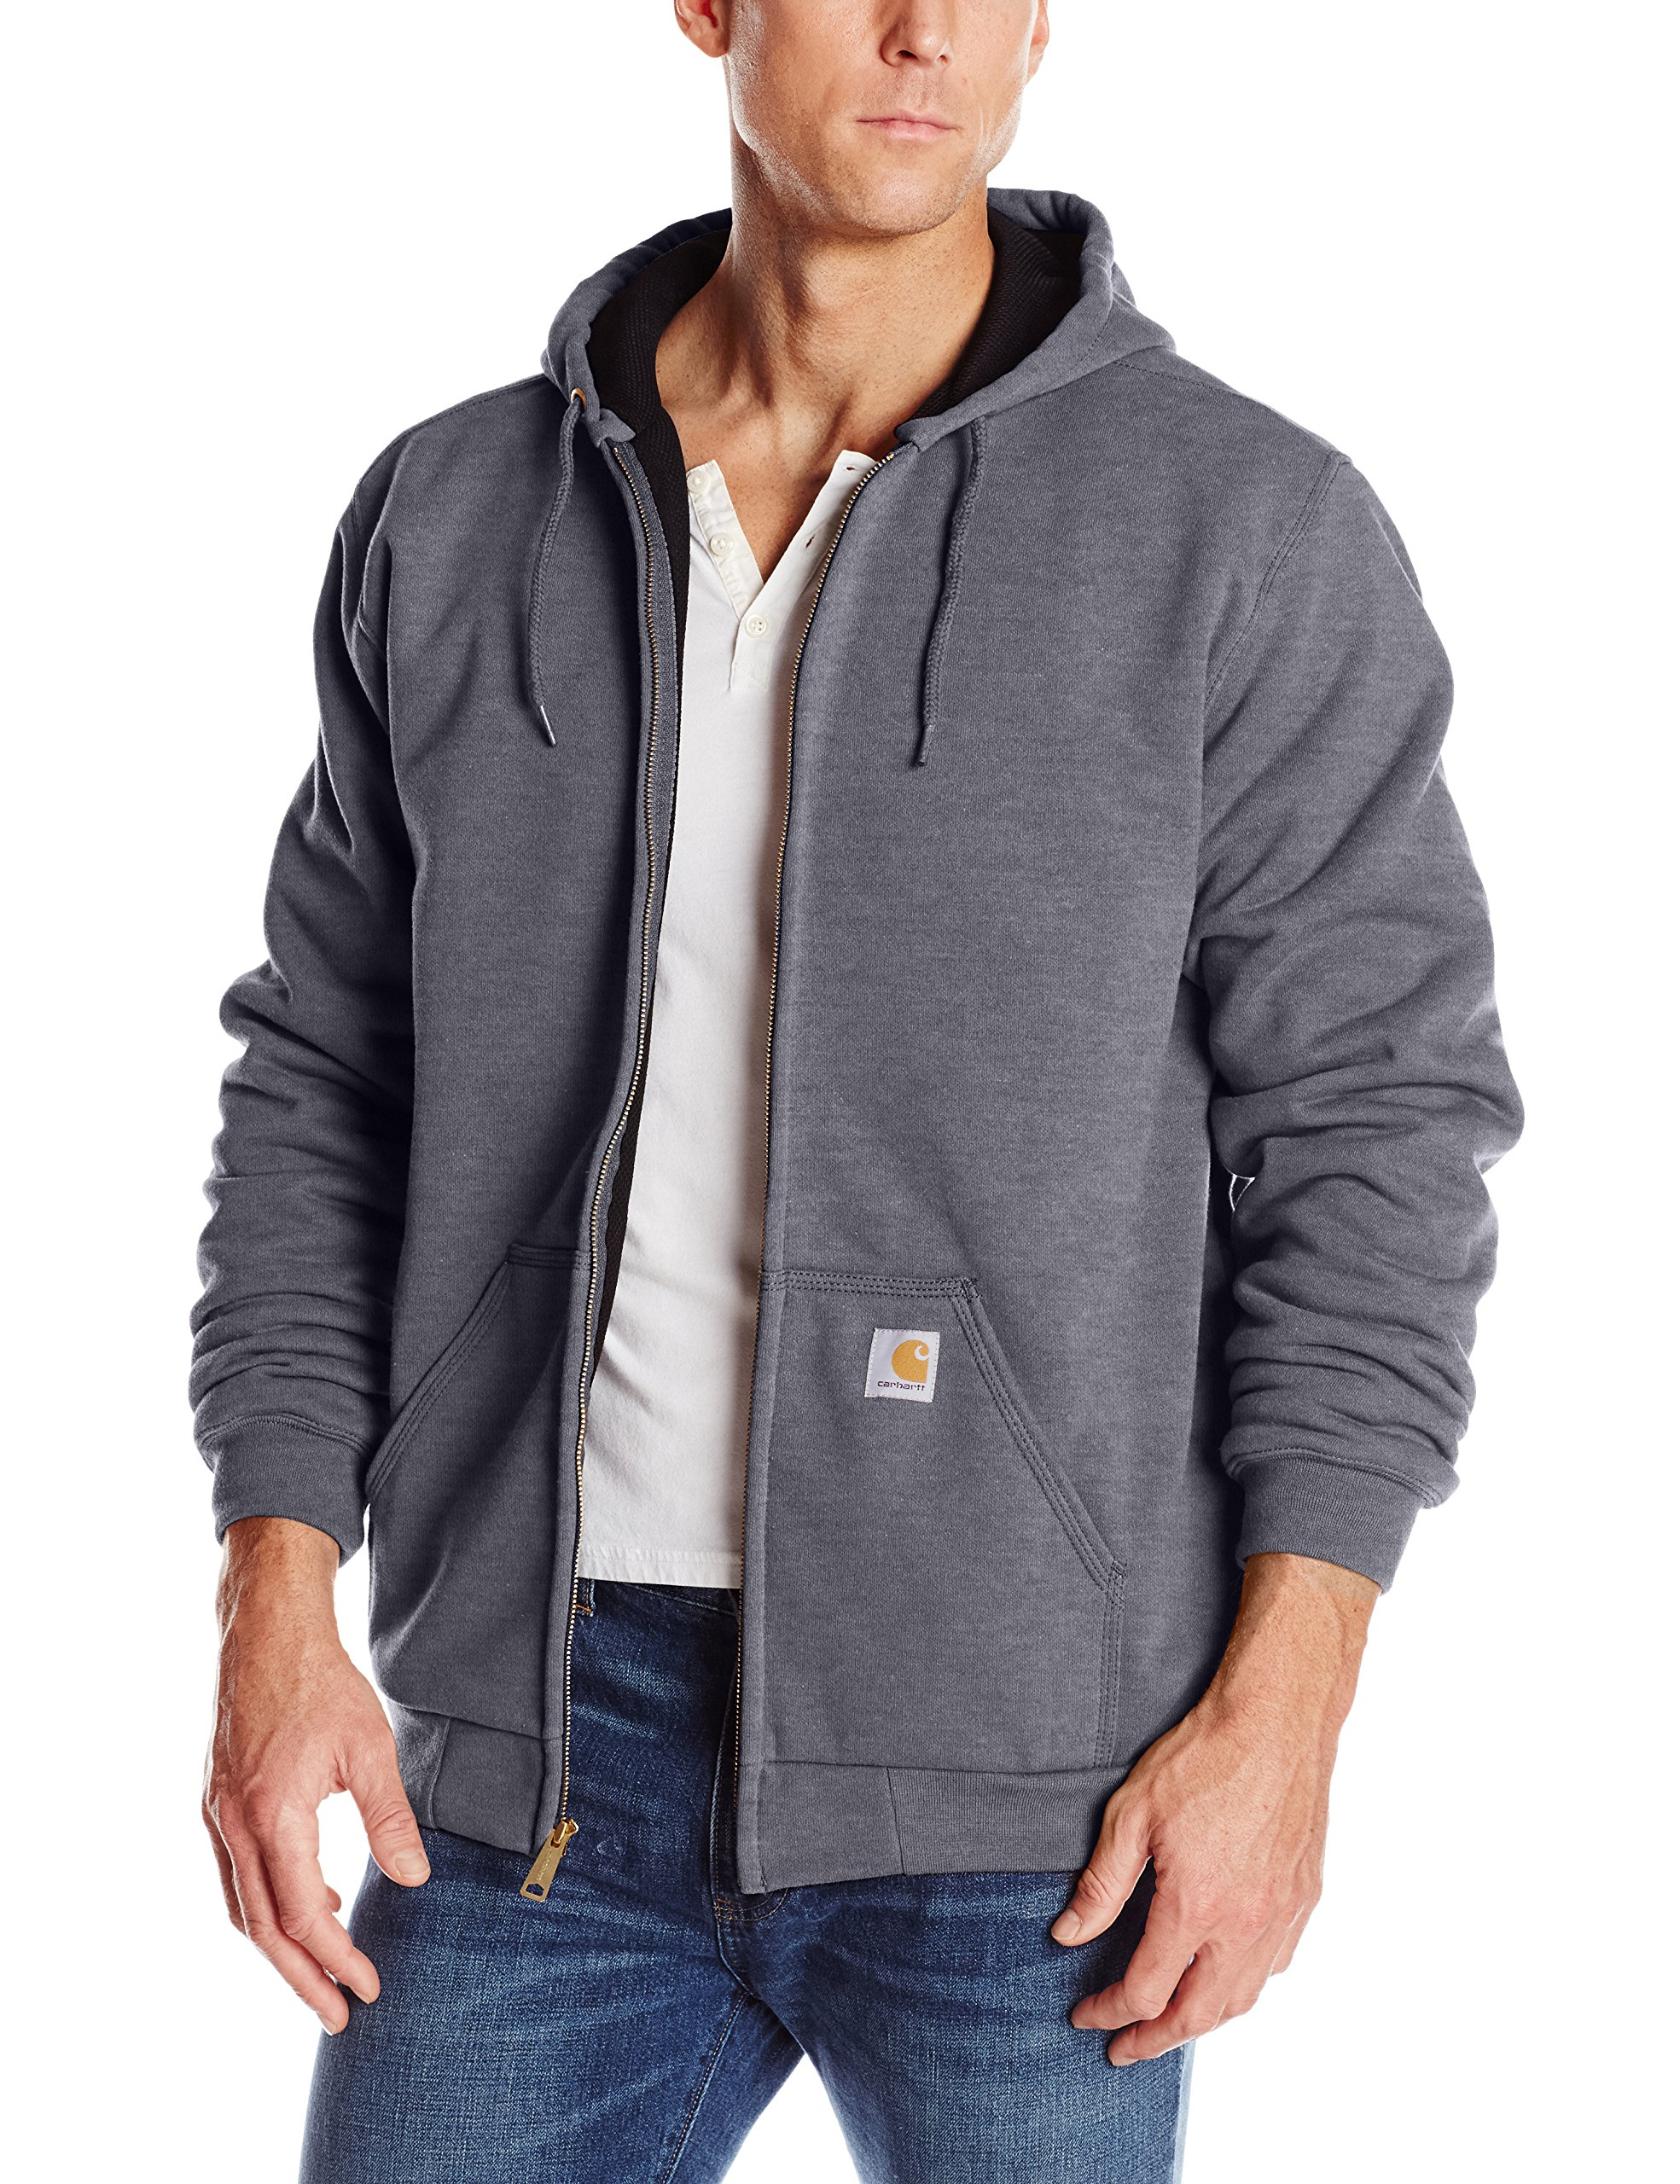 Carhartt Rutland Thermal-Lined Hooded Zip-Front Sweatshirt, Carbon Heather, XX-Large Tall by Carhartt